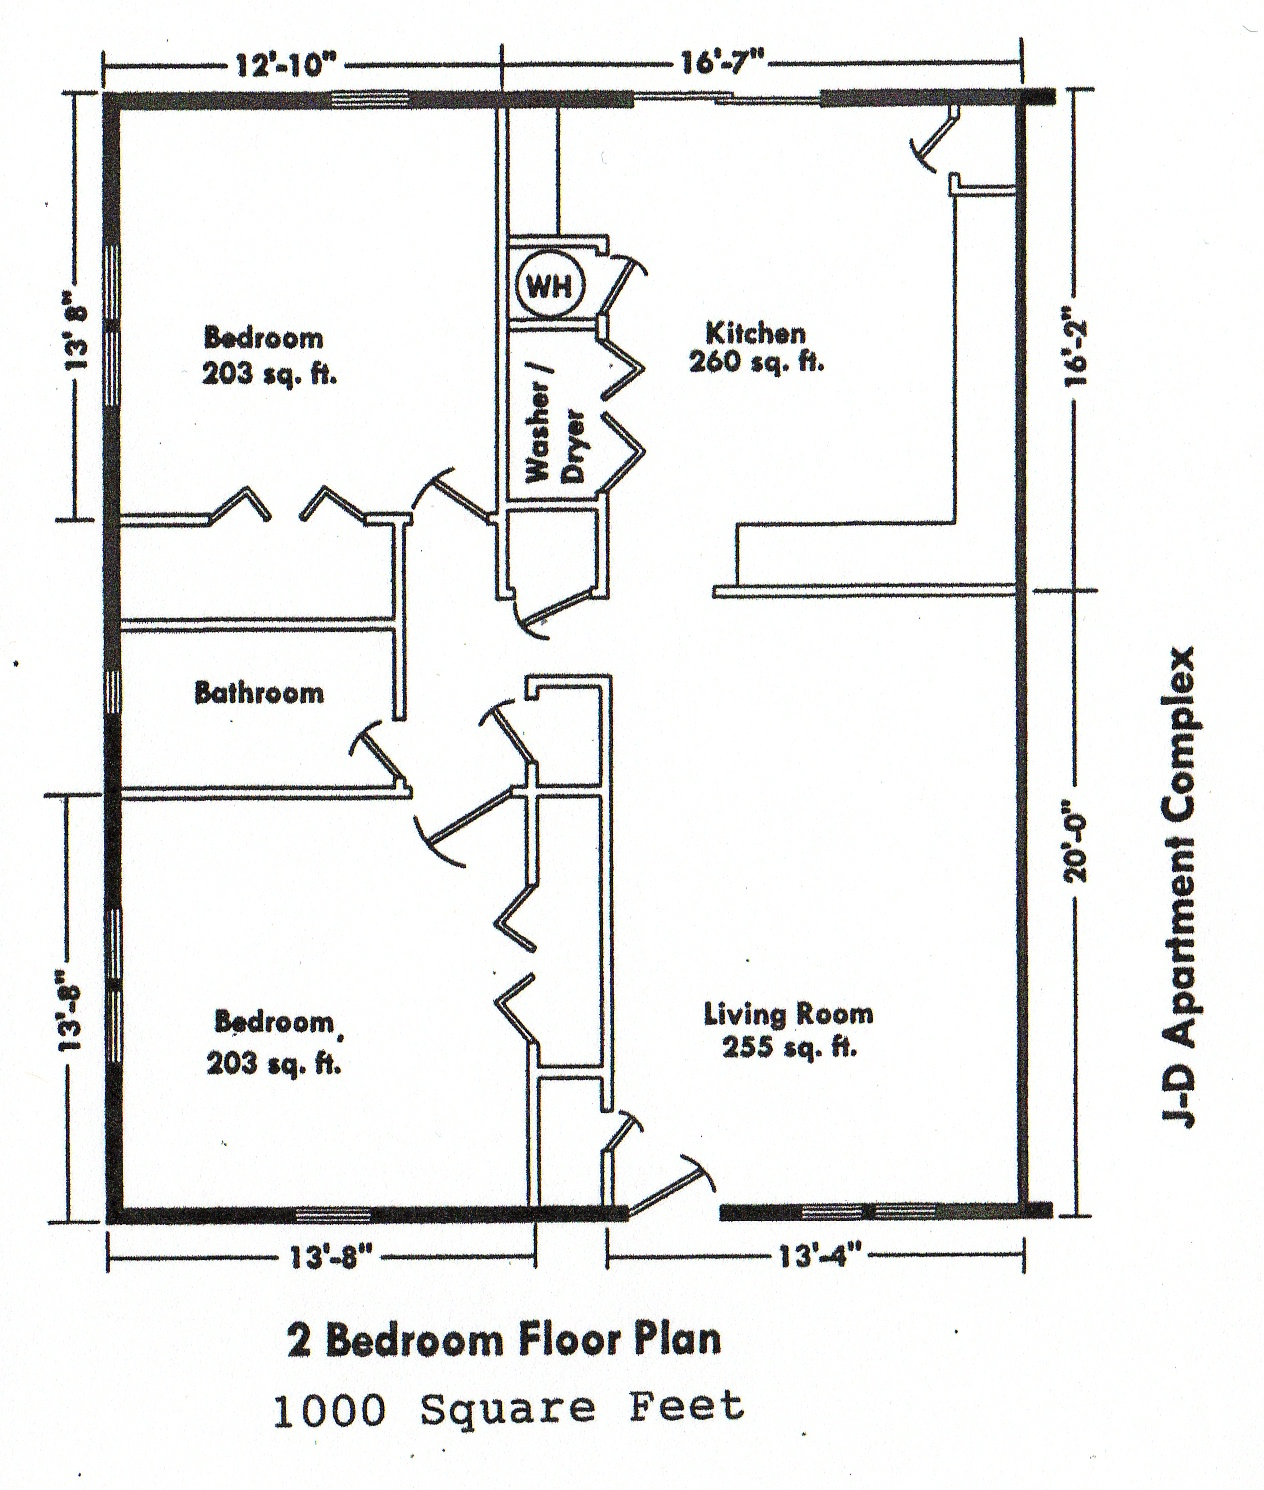 Bedroom floor plans over 5000 house plans for 2 master bedroom floor plans